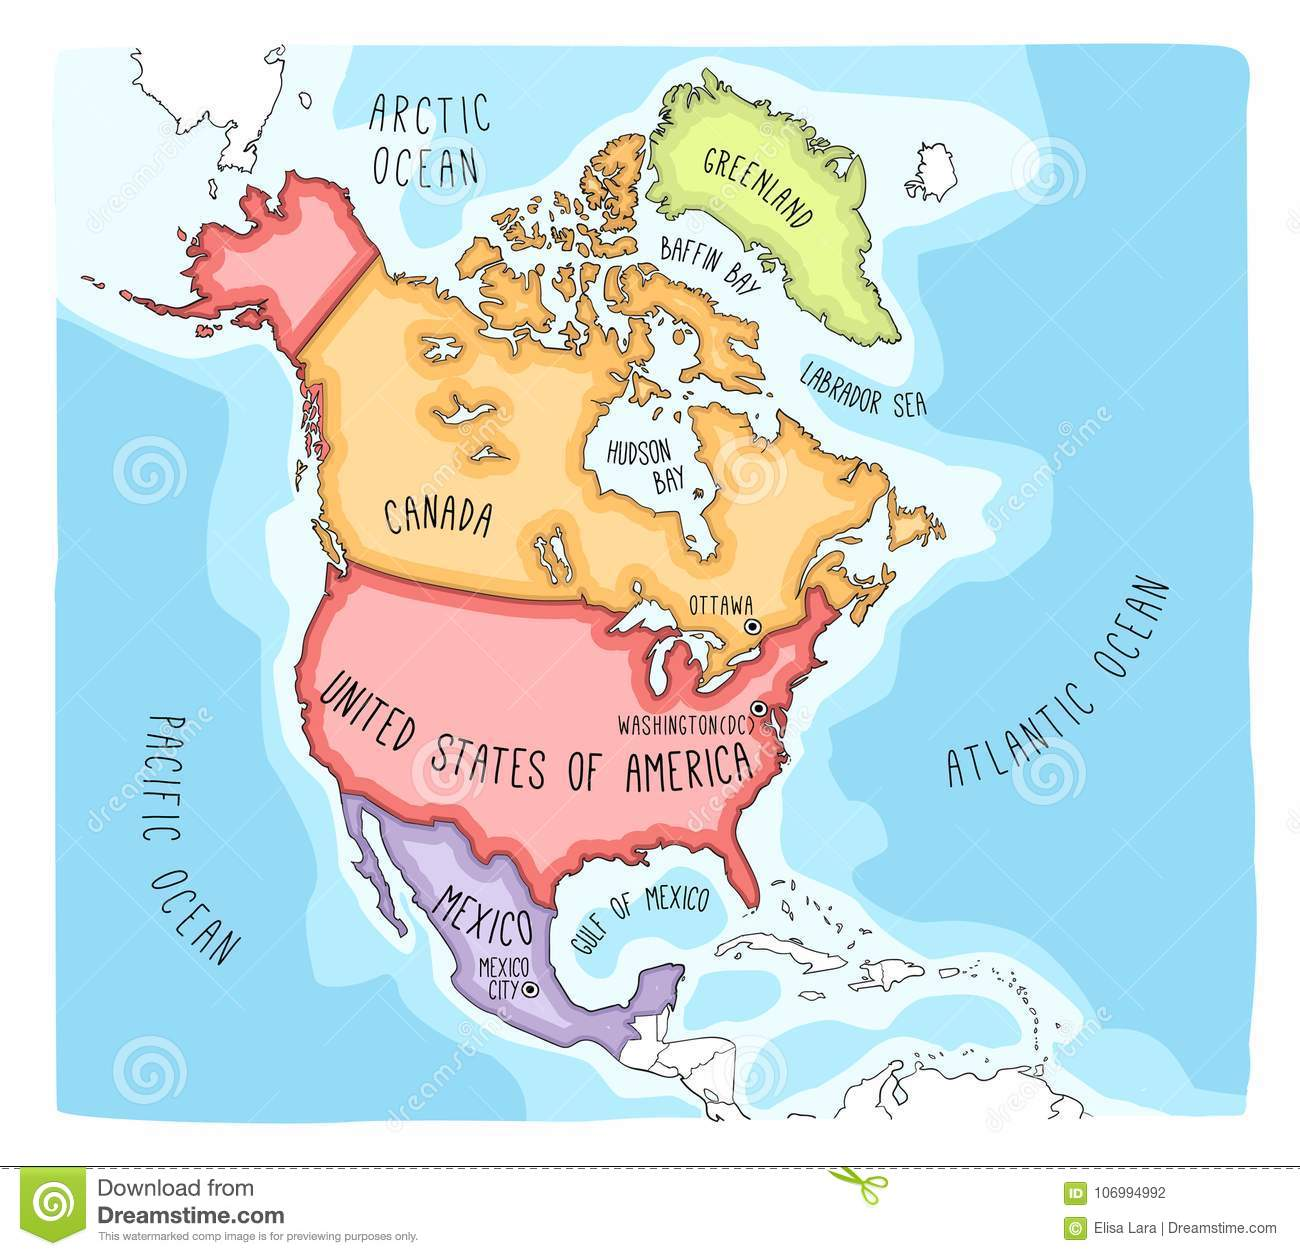 Doodle Map Of North America Stock Vector - Illustration of ... on map of the world, map of caribbean, map of south america, map of el salvador, map of us, map of france, map of countries, map of mexico, map of us and canada, map of china, map of california, map of antarctica, map of usa, map of australia, map of germany, map of texas, map of georgia, map of florida, map of bermuda, map of the americas, map of europe, map of hawaii, map of guatemala, map of toronto, map of greenland, map of canada, map of arctic circle, map of newfoundland, map of the united states, map of africa, map of italy, map of great lakes, map of northern america, states of america, map of bahamas, map of earth,